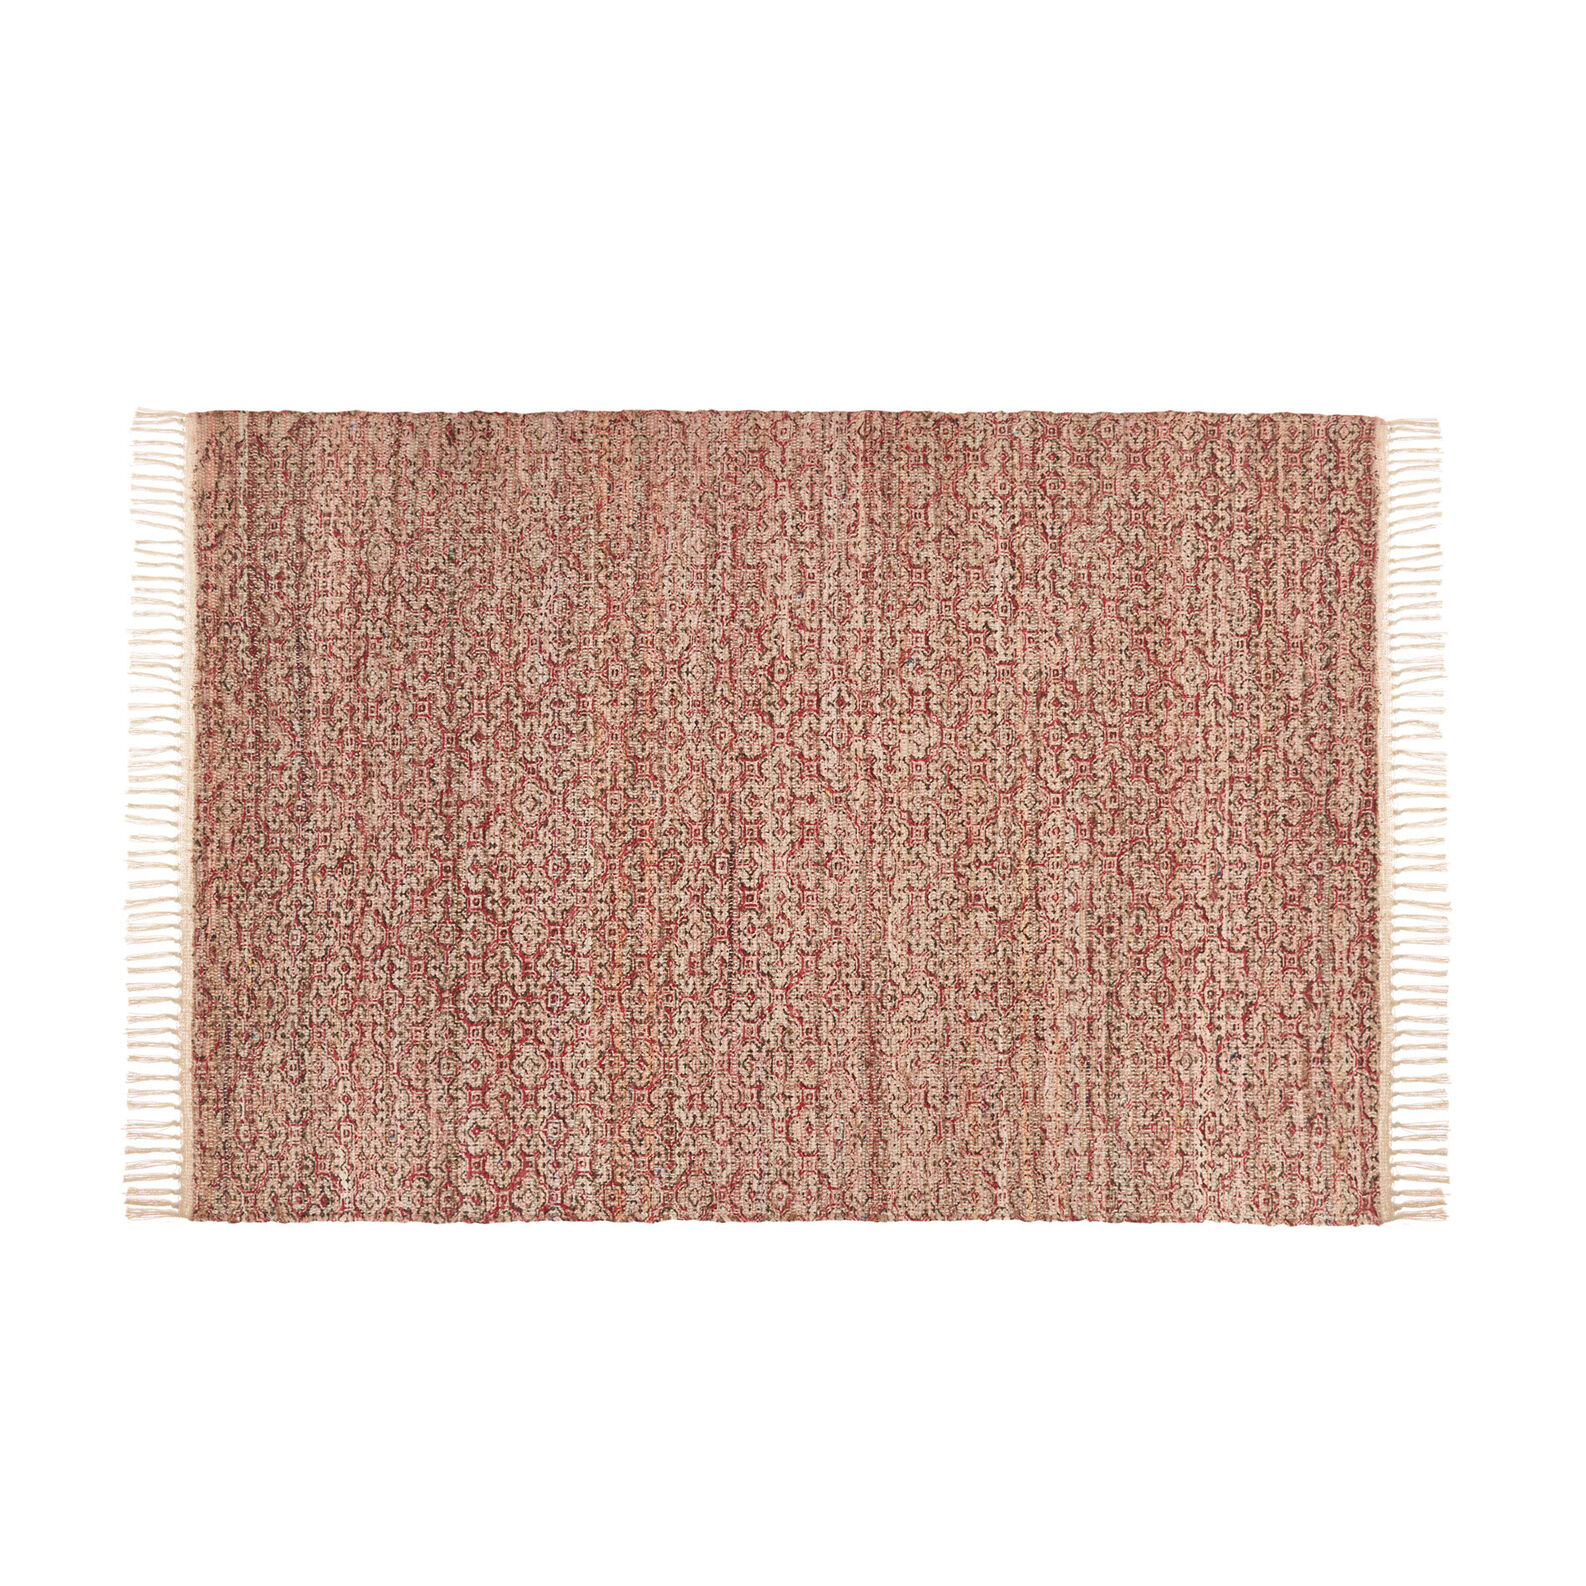 Chindi rug in recycled cotton with geometric design